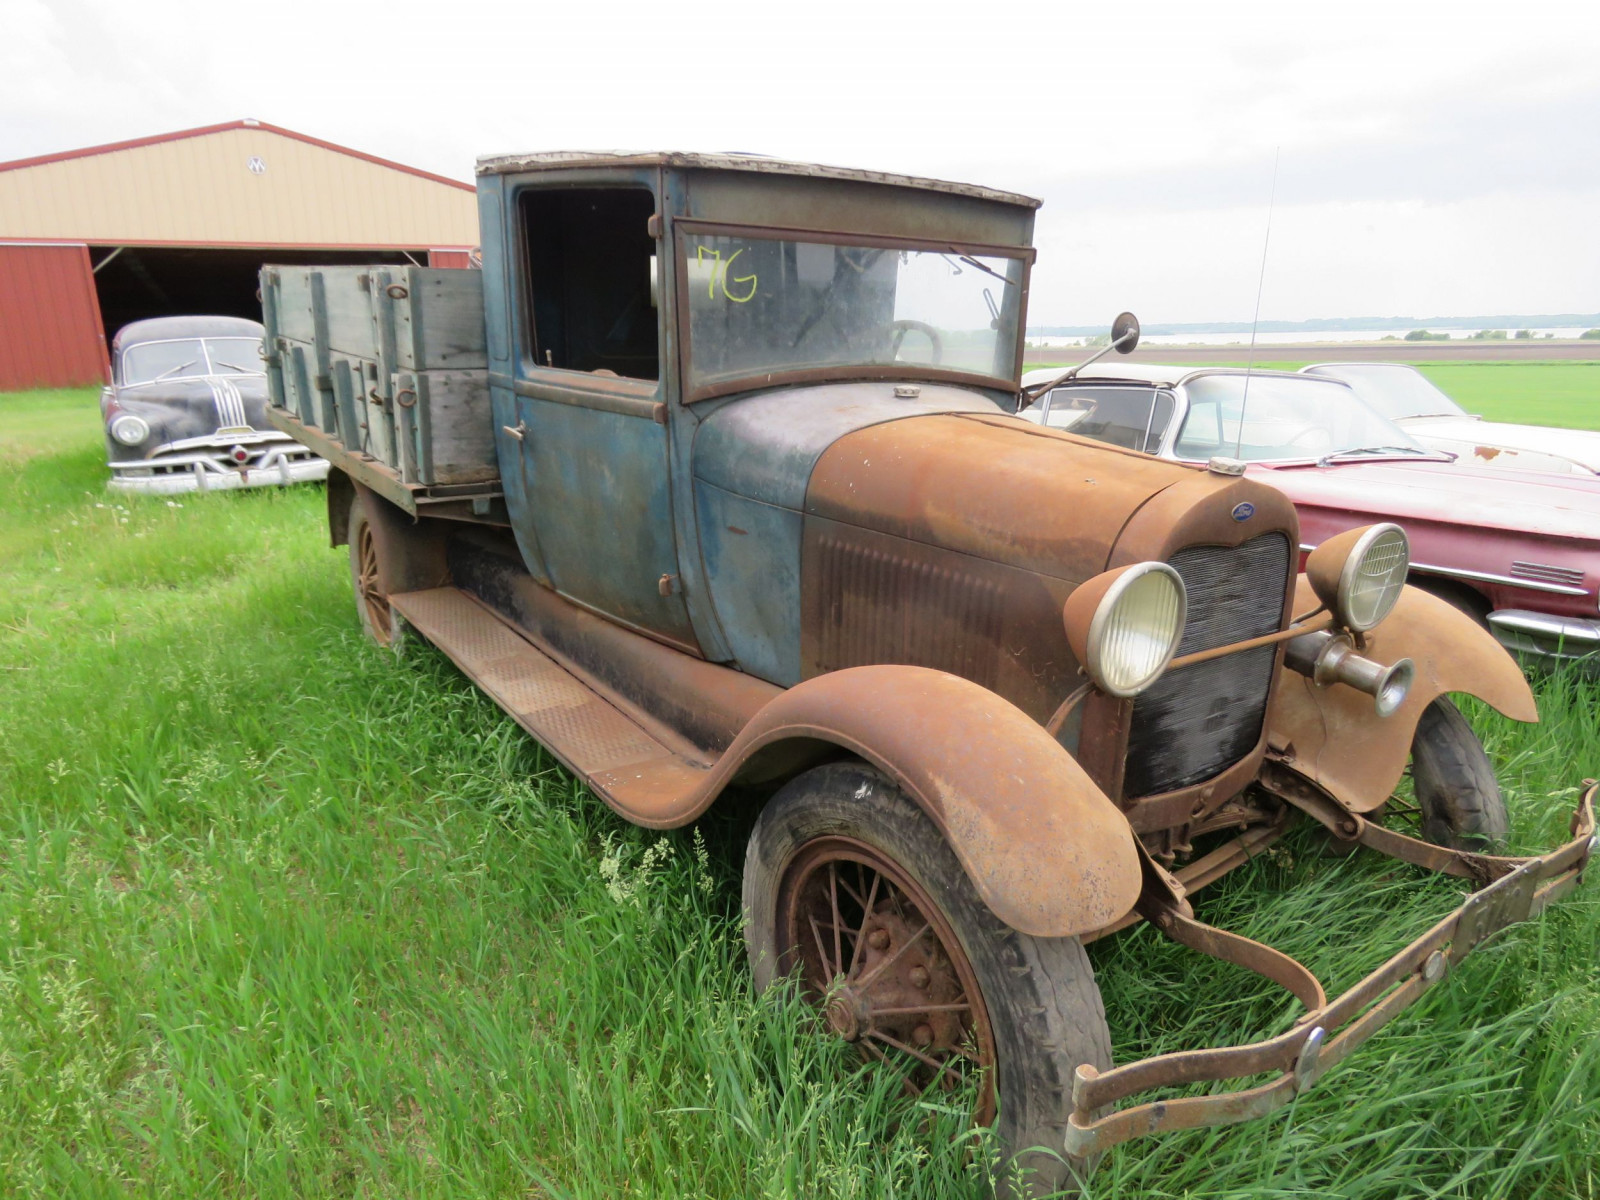 1928 Ford Model A Truck - Image 1